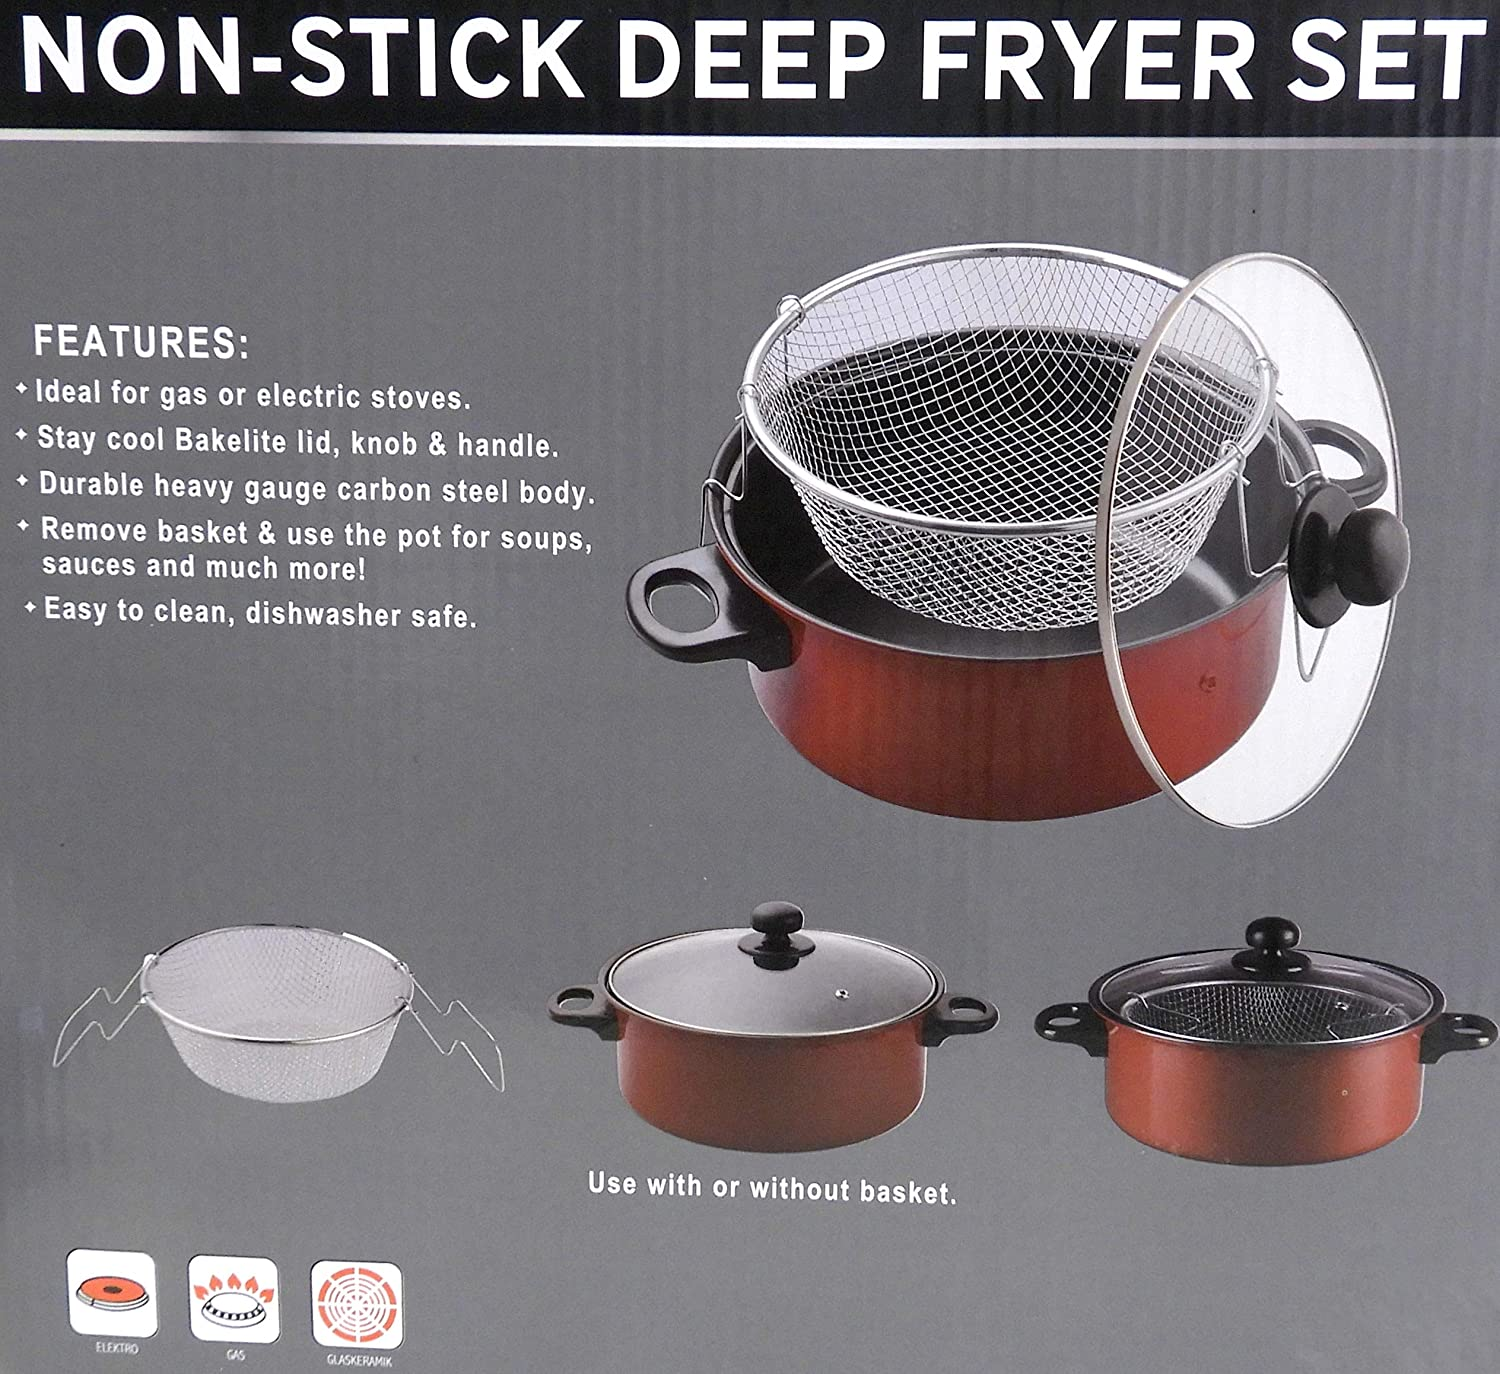 Amazon.com: Gourmet Non Stick Deep Fryer with Frying Basket and Glass Cover Steamer Cooker Frier: Kitchen & Dining